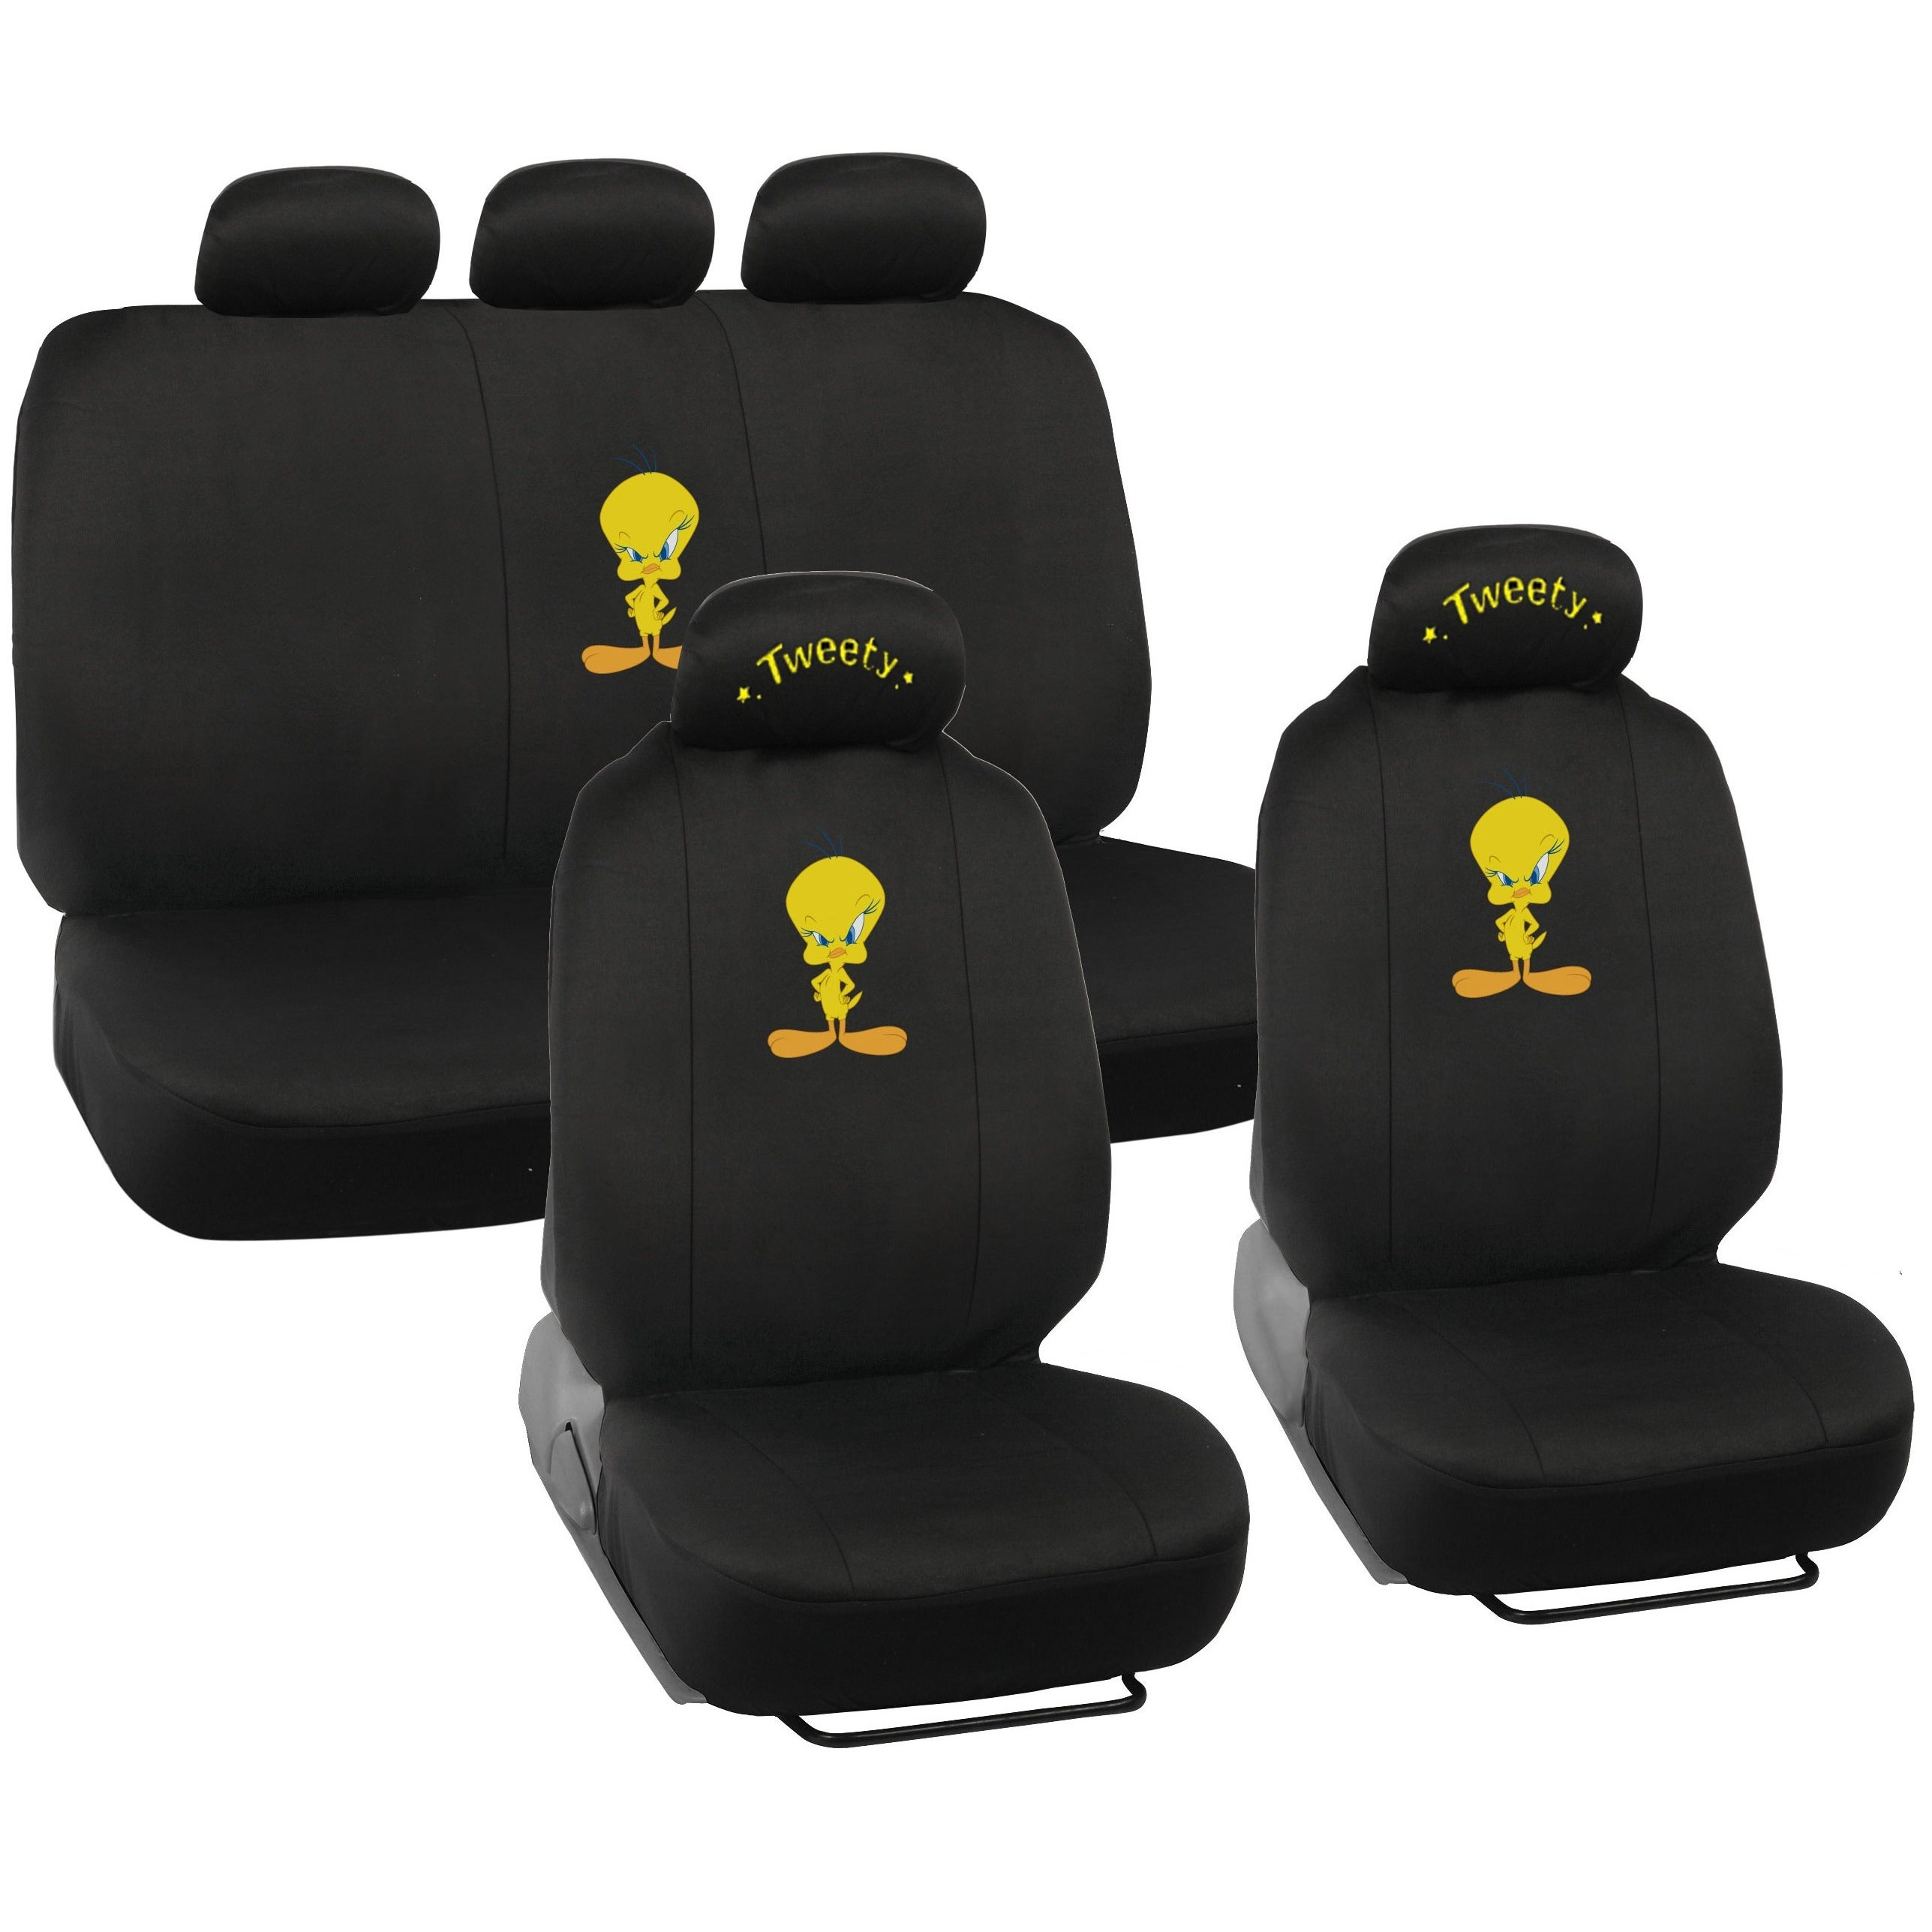 tweety bird seat covers compare prices at nextag